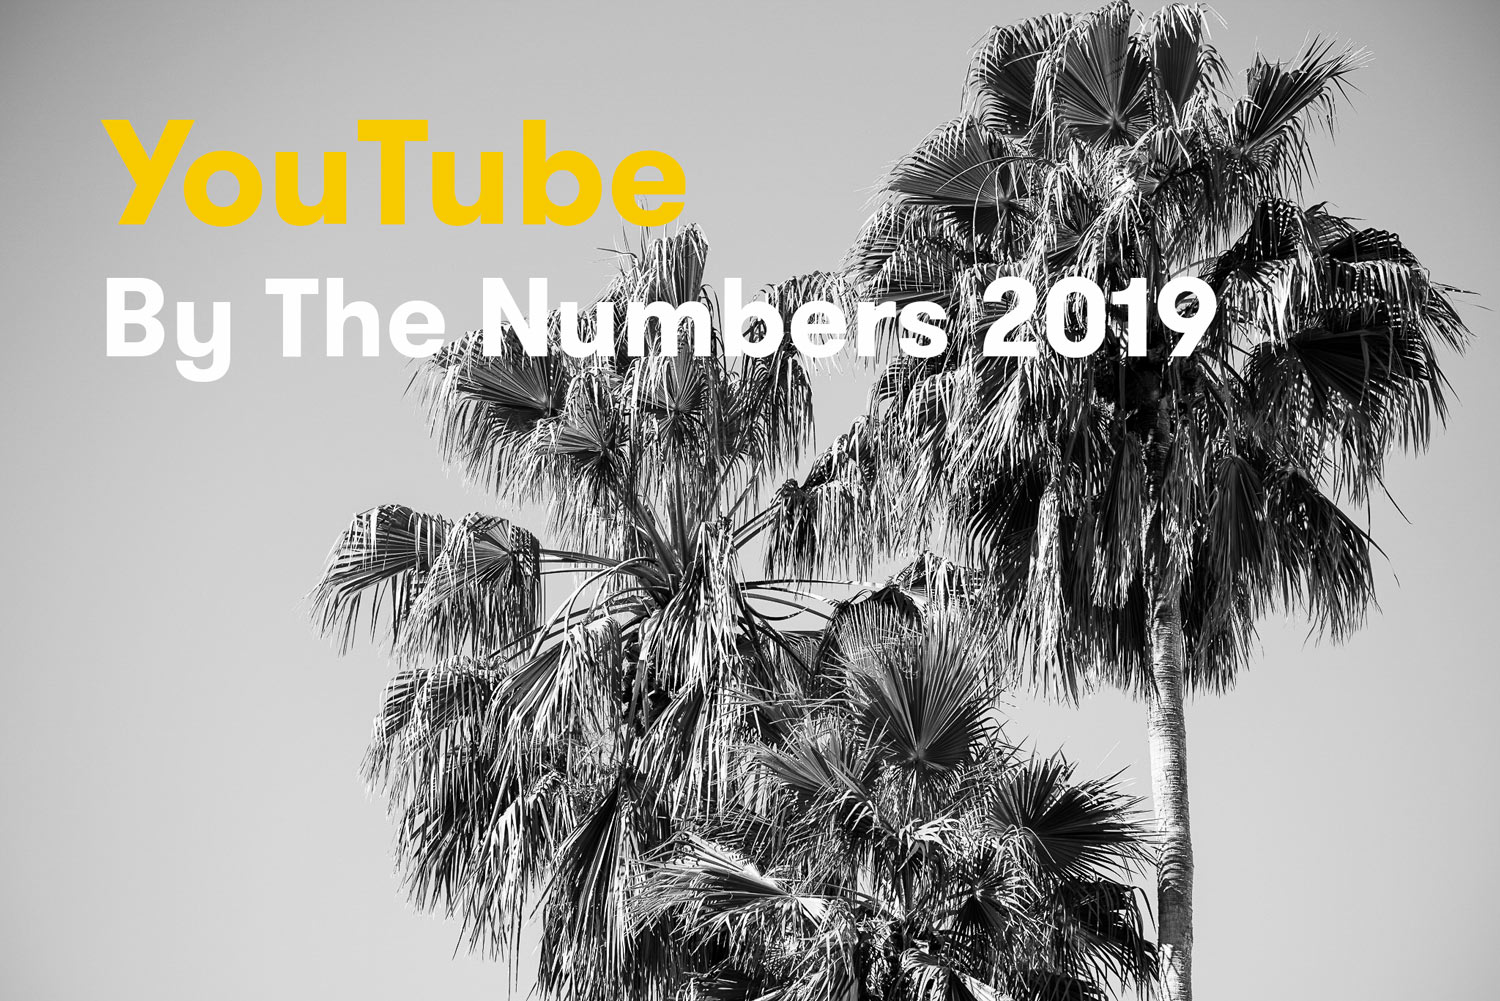 YouTube By The Numbers For 2019 [Infographic]